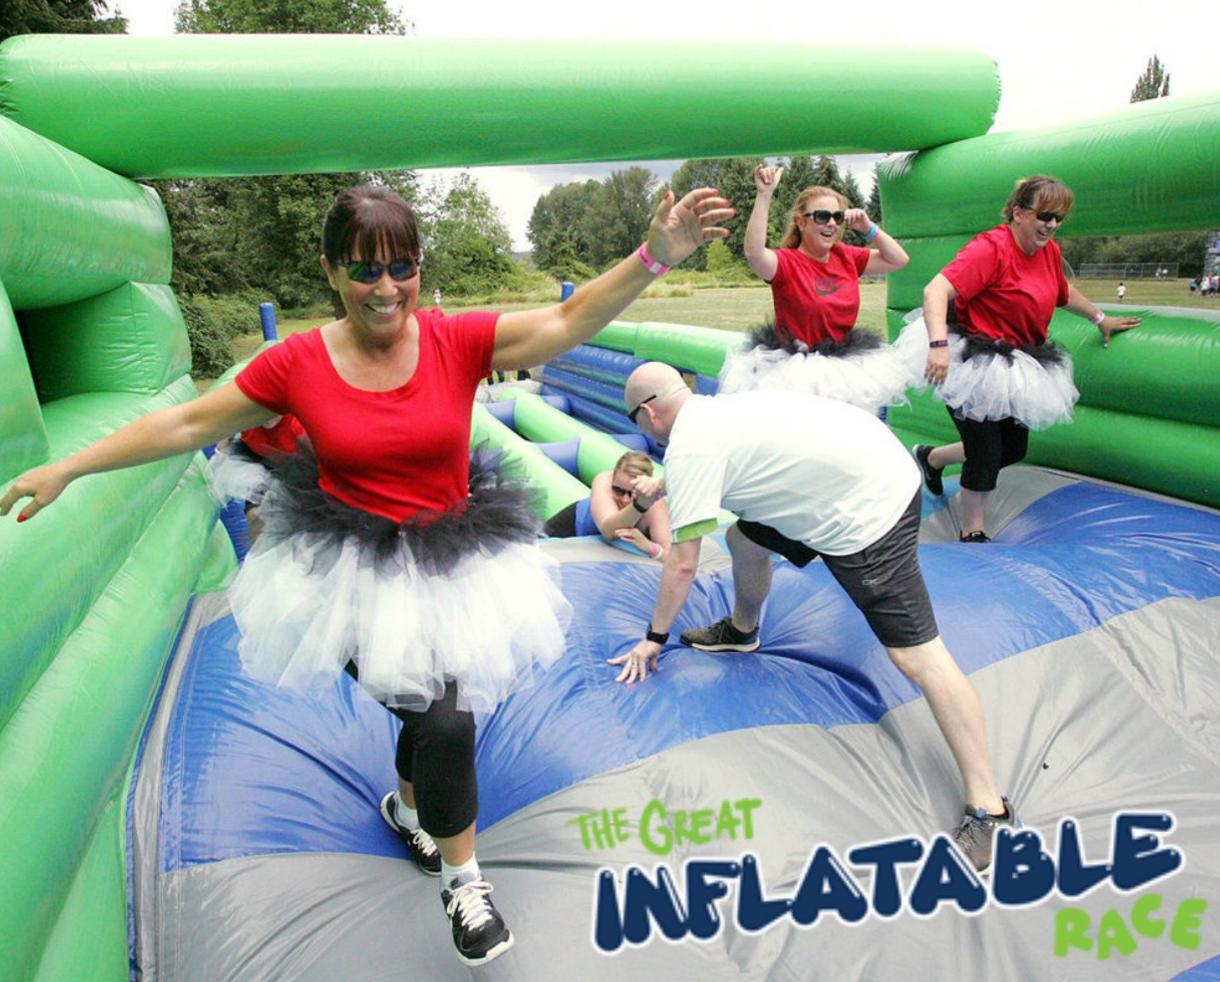 $24.99+ for One Entry to The Great Inflatable Race on June 23 in Philadelphia (Up to 67% Off!)